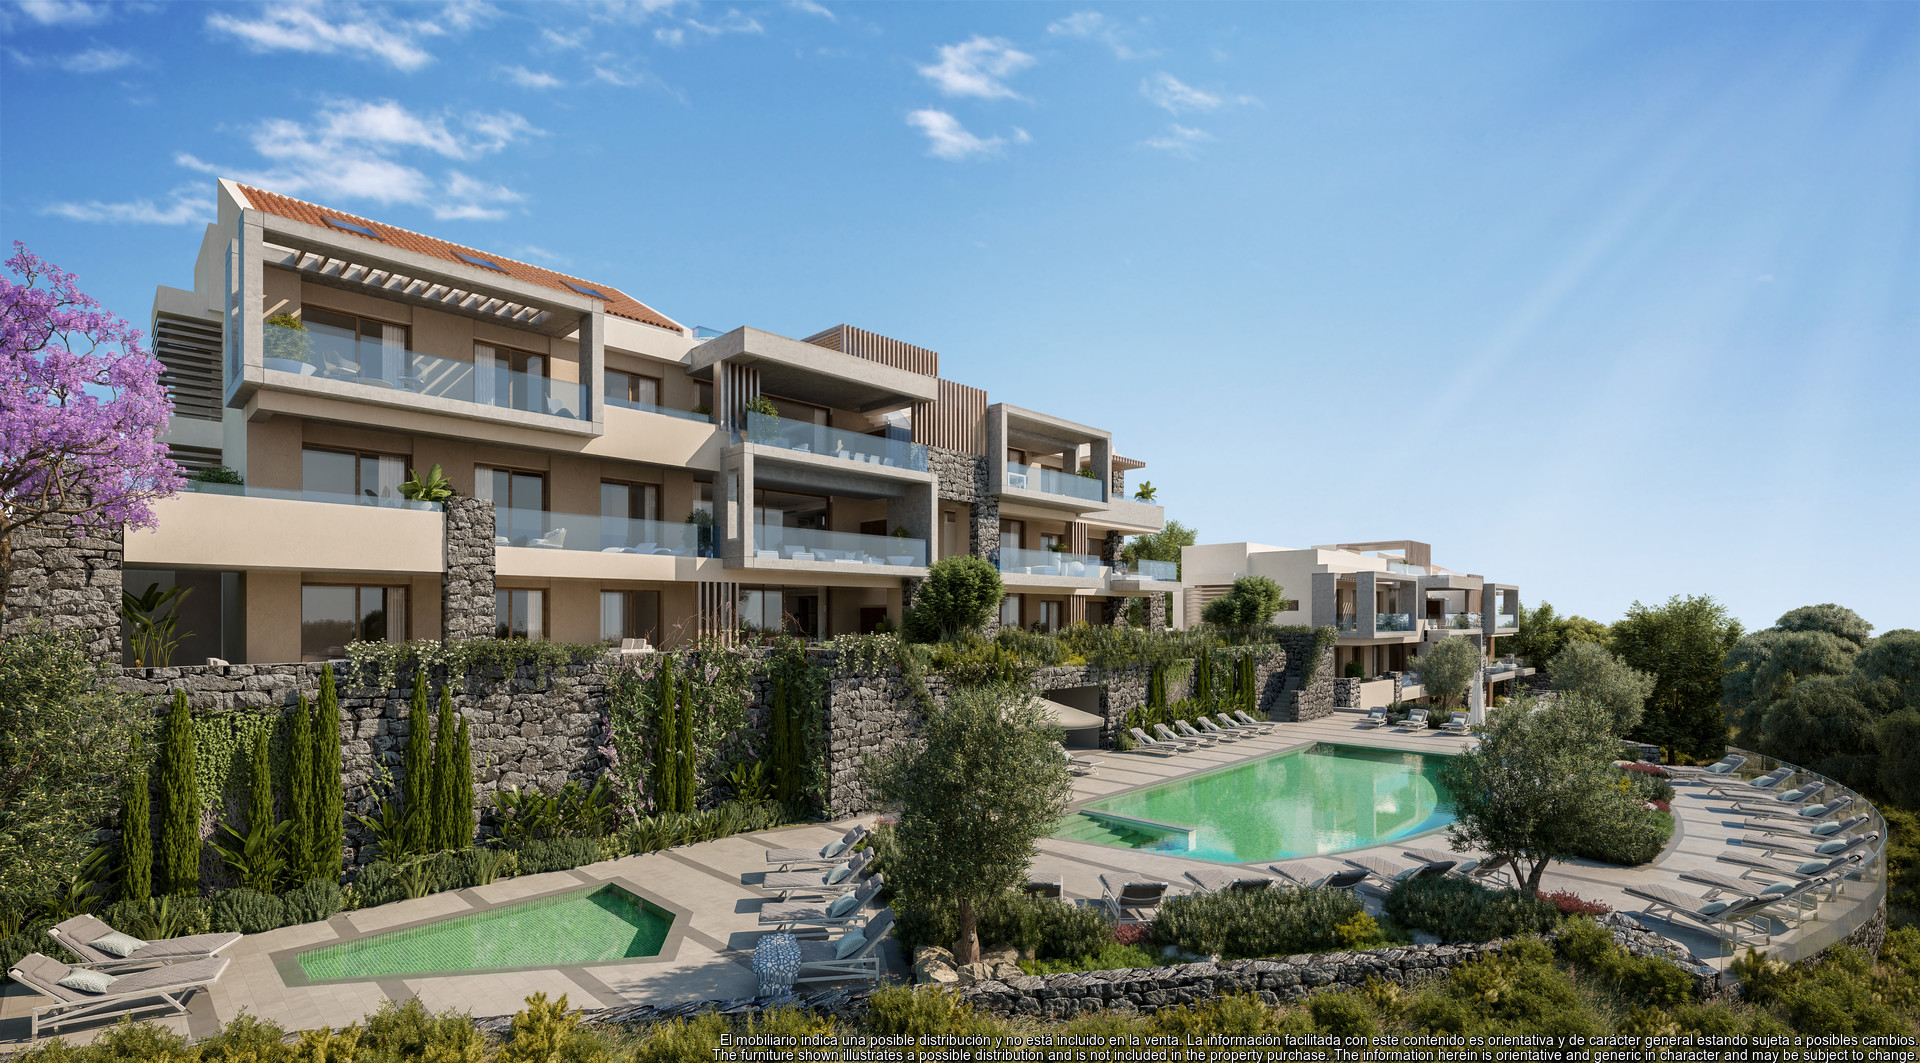 3rd phase of exclusive residences in La Quinta